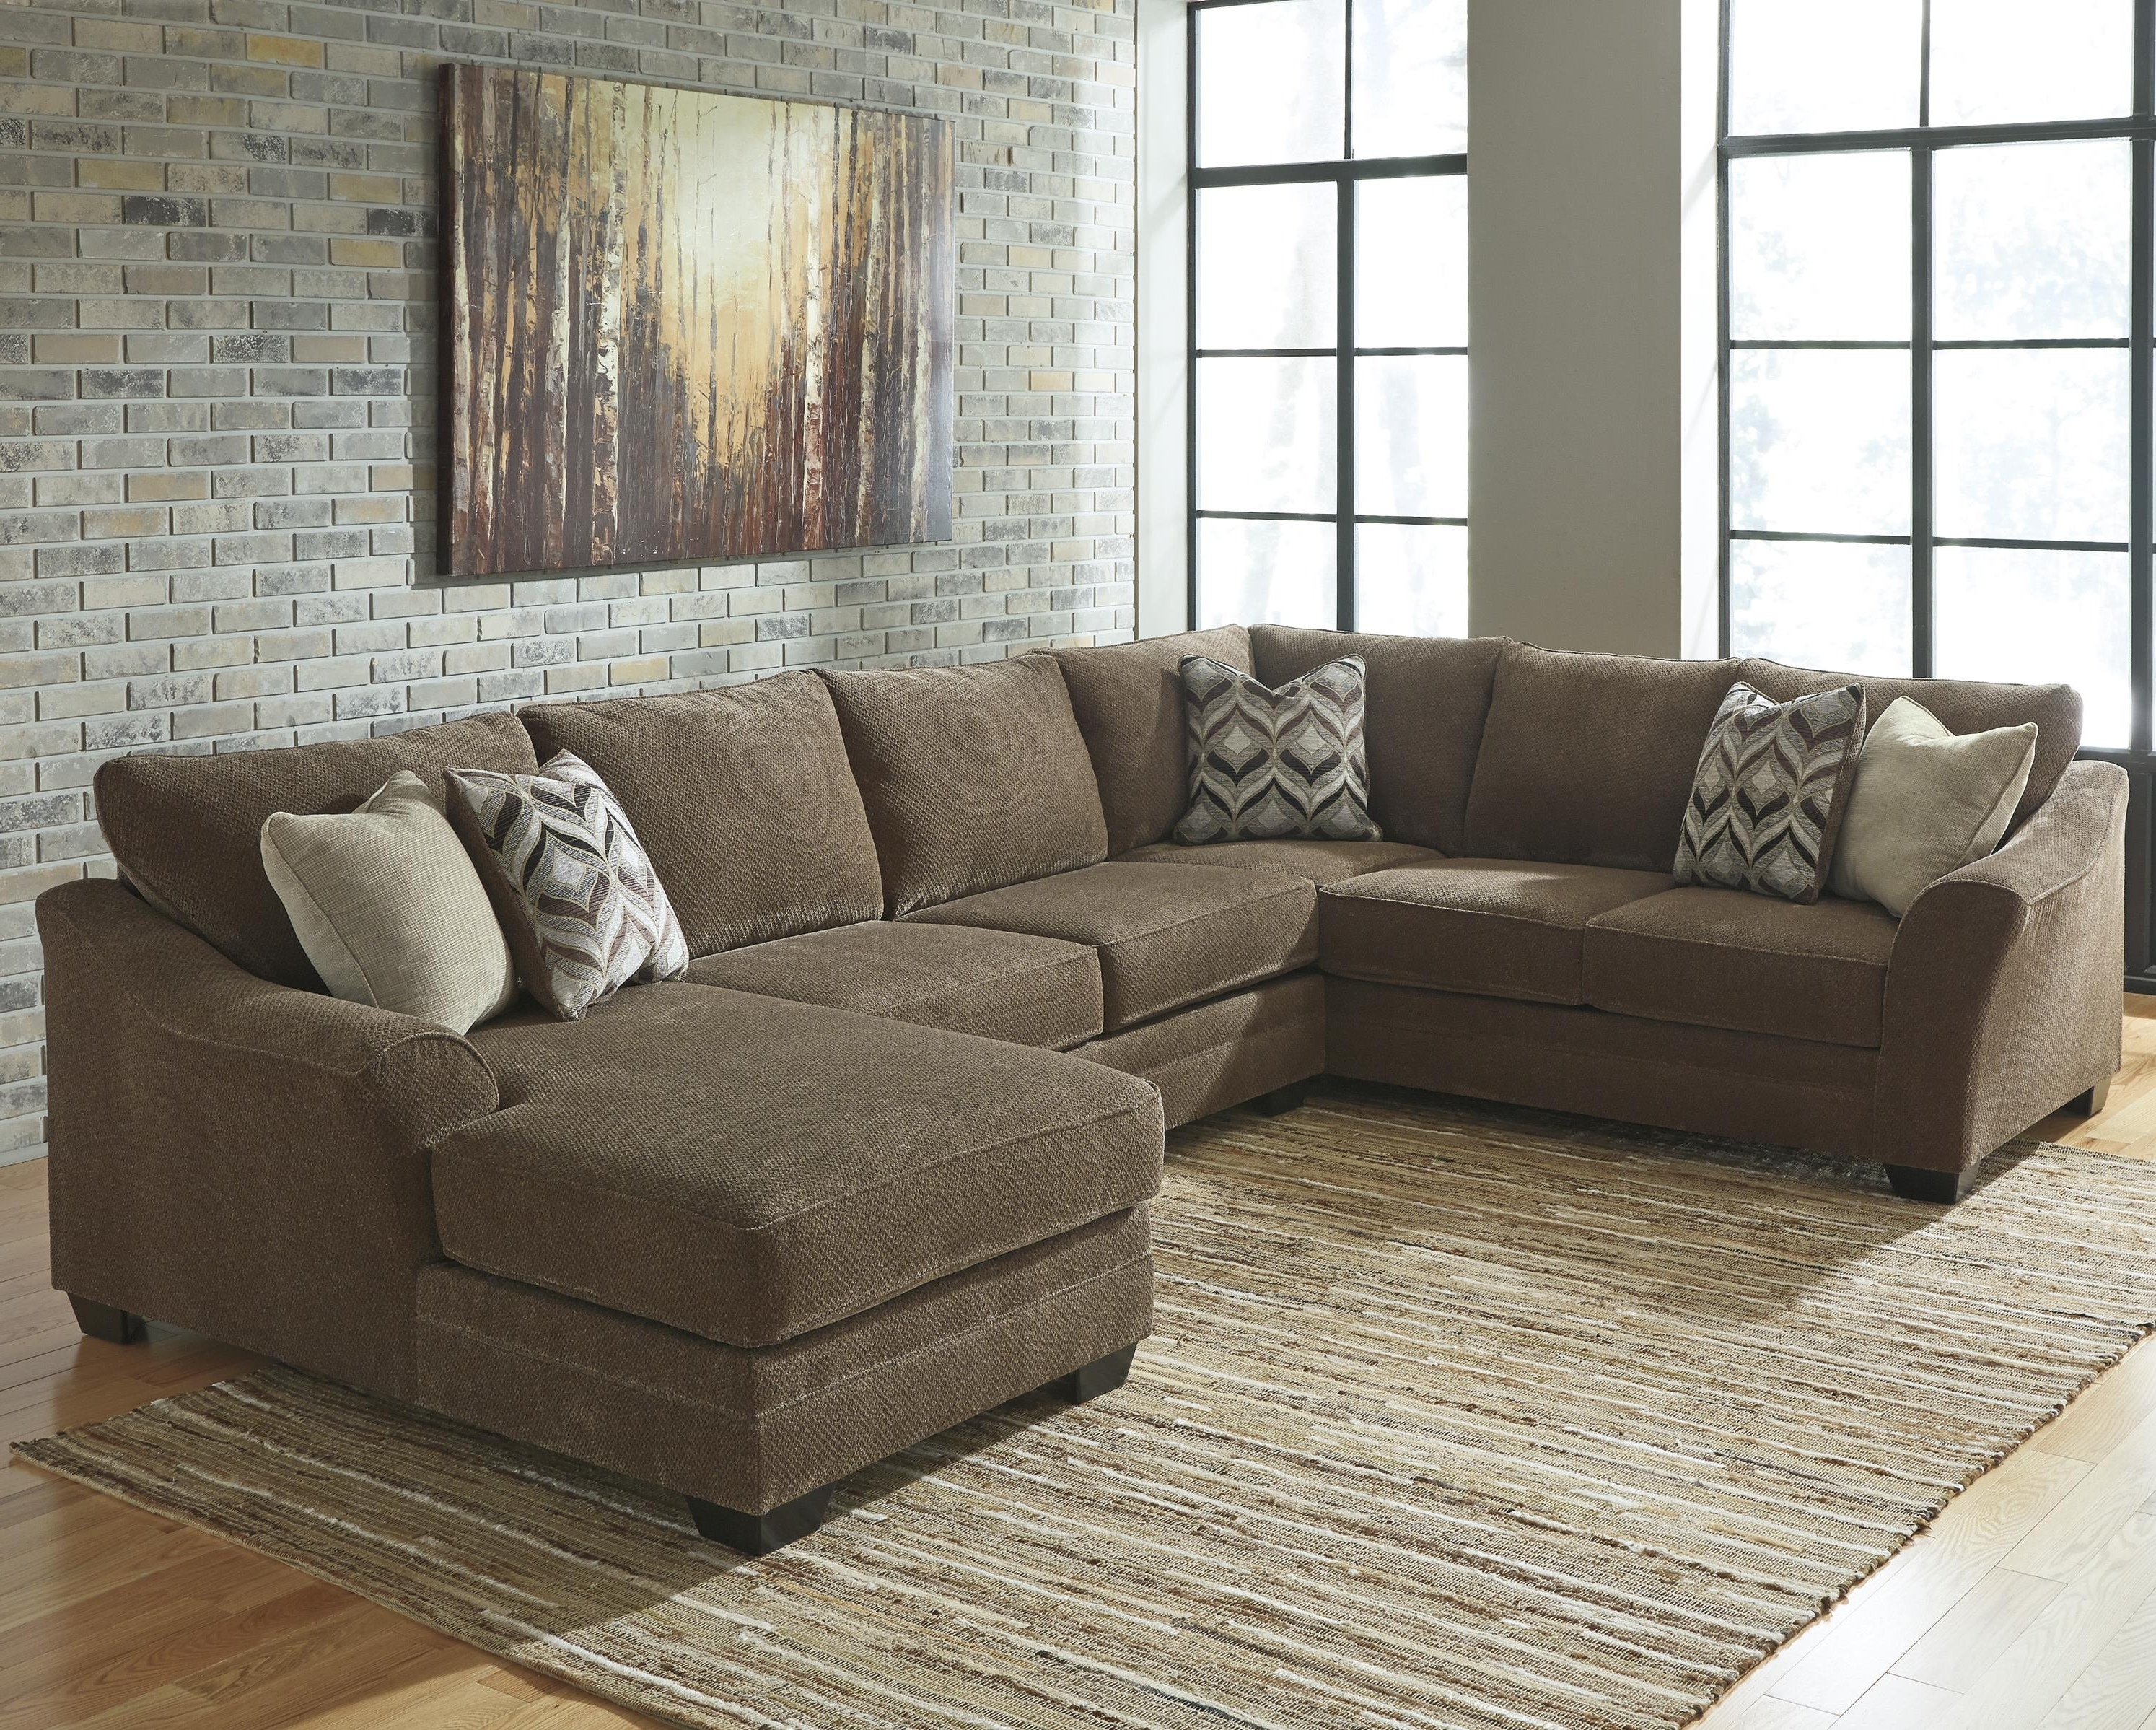 Recent Ethan Allen Sofas Clearance Sectional Couch With Recliner Big Lots Intended For Clearance Sectional Sofas (View 17 of 20)